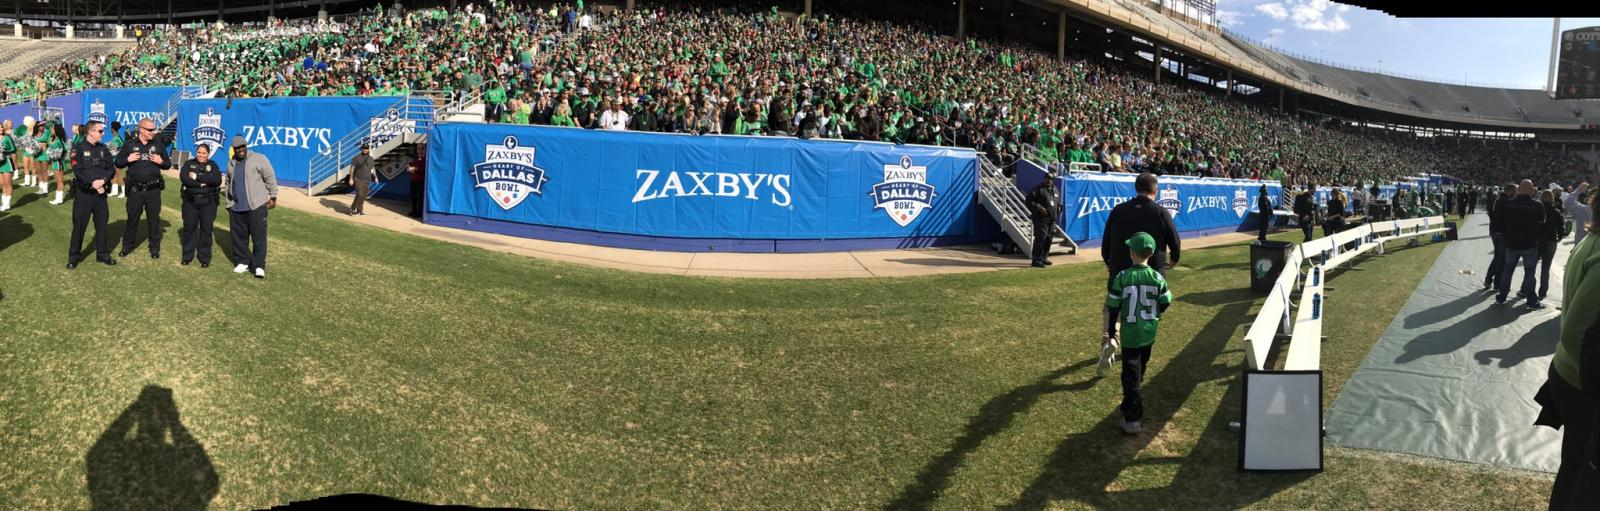 2016 Heart of Dallas Bowl in Pictures